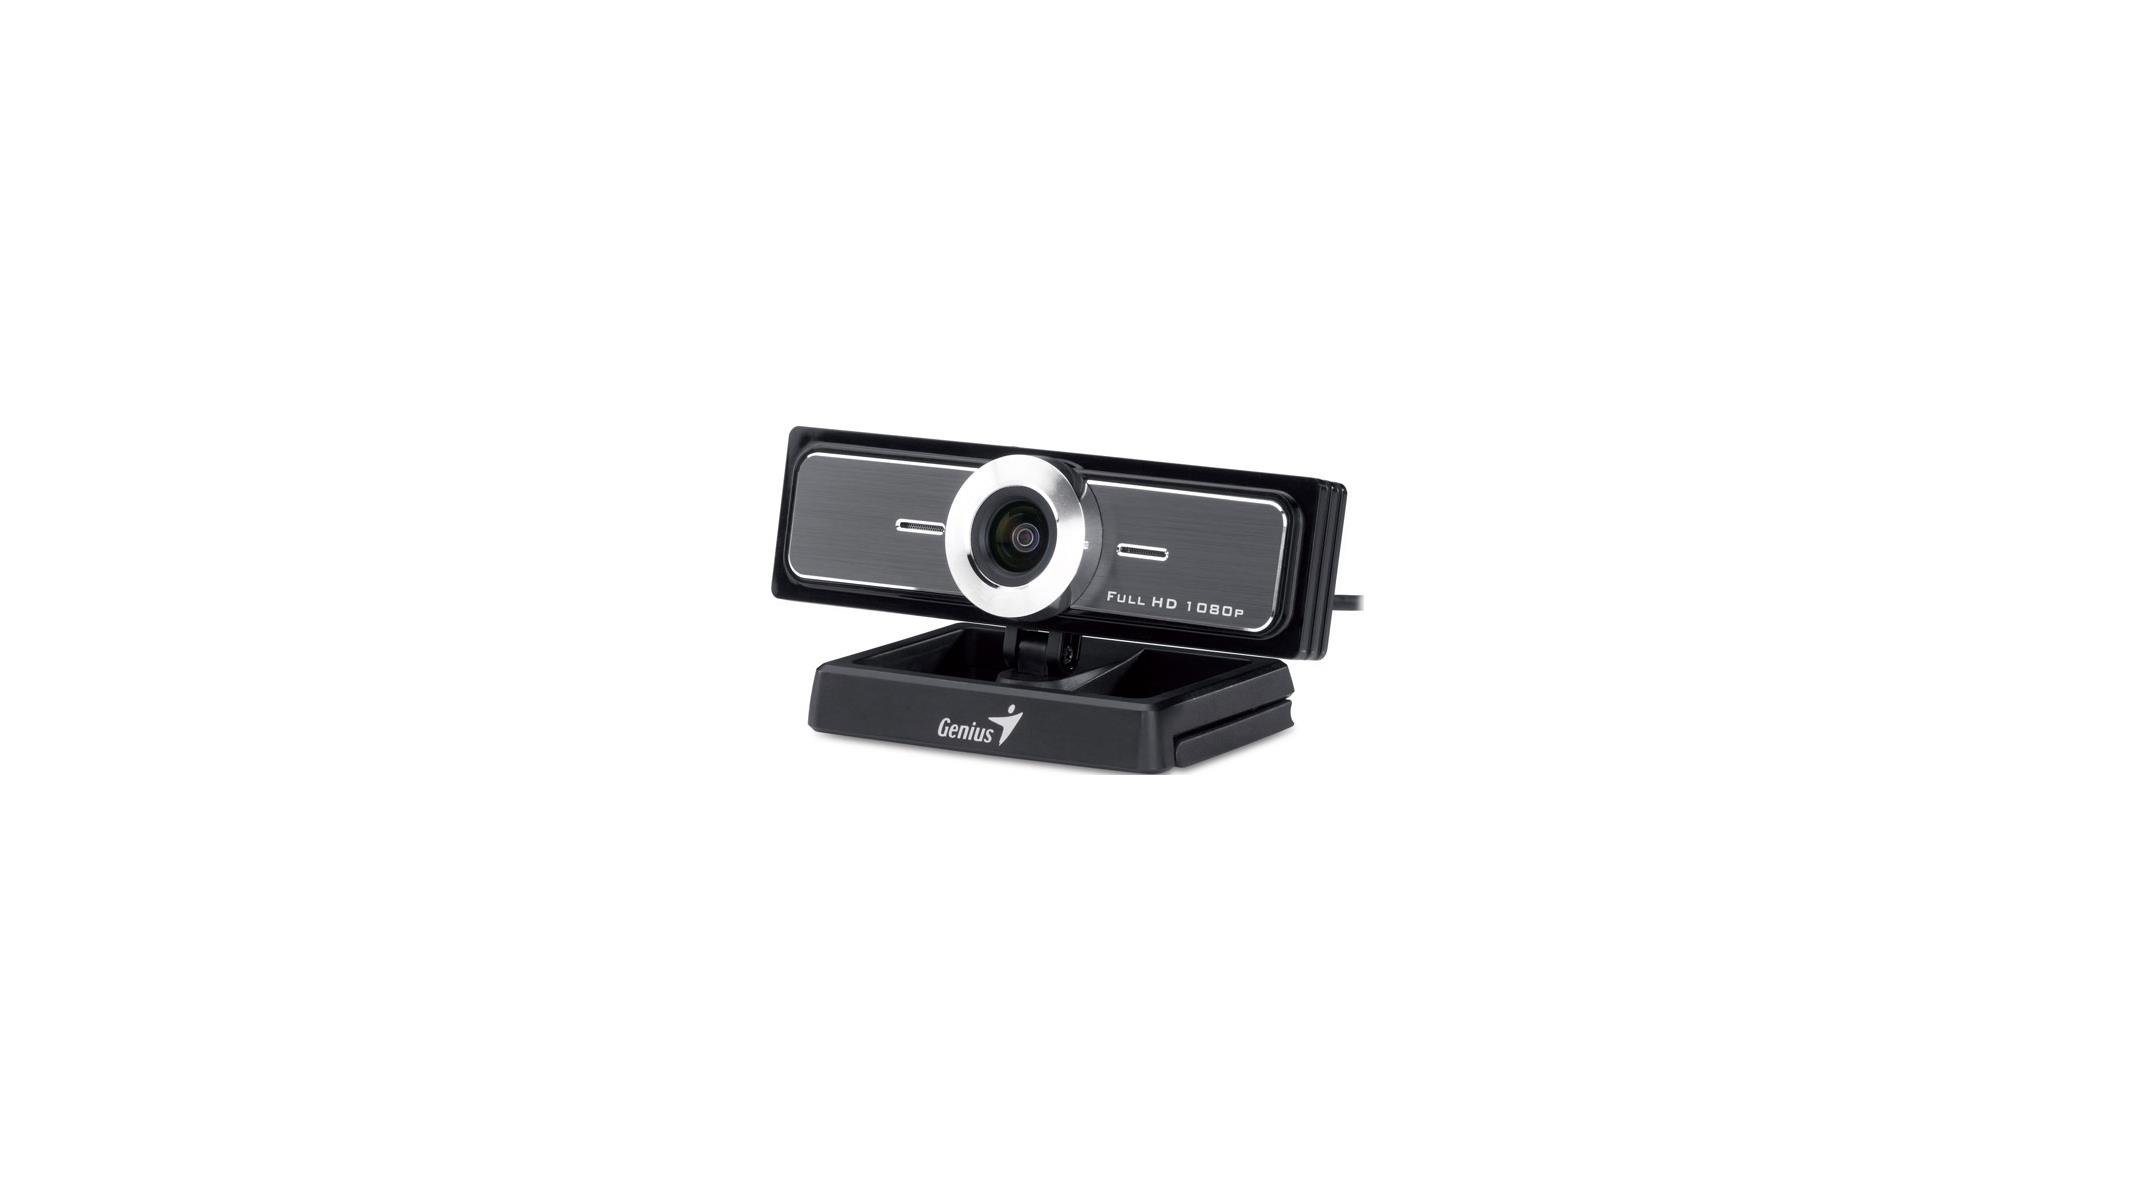 Webcam WideCam F100 Genius 120 Degree Ultra with MIC Angle for Computer Full HD